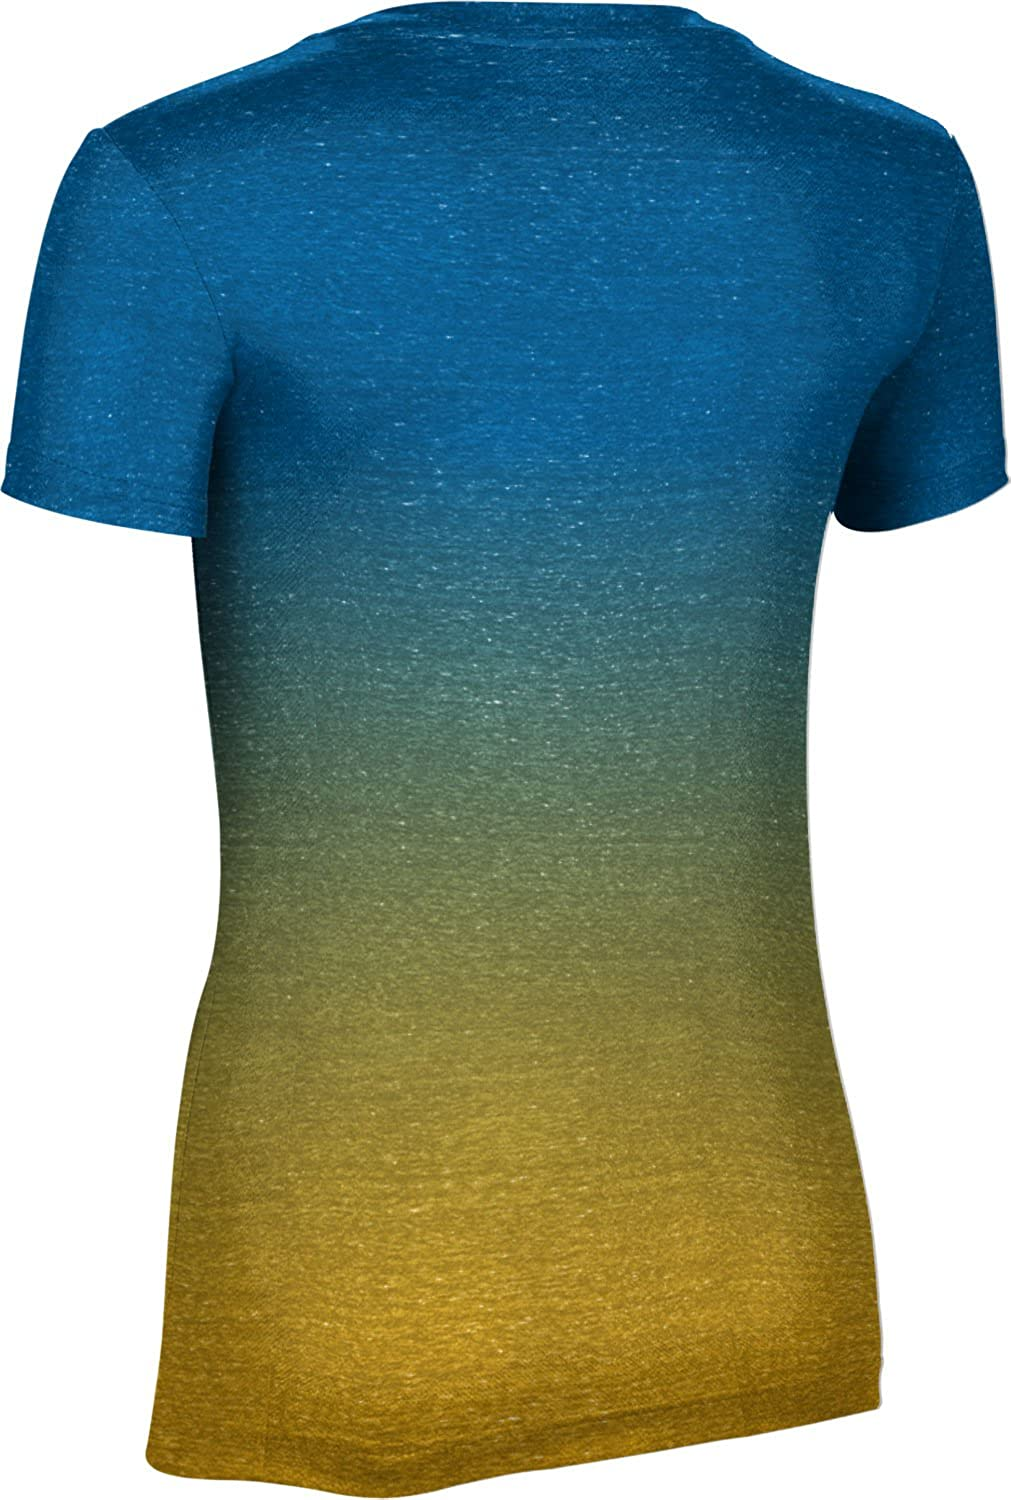 Ombre ProSphere University of California Riverside Girls Performance T-Shirt